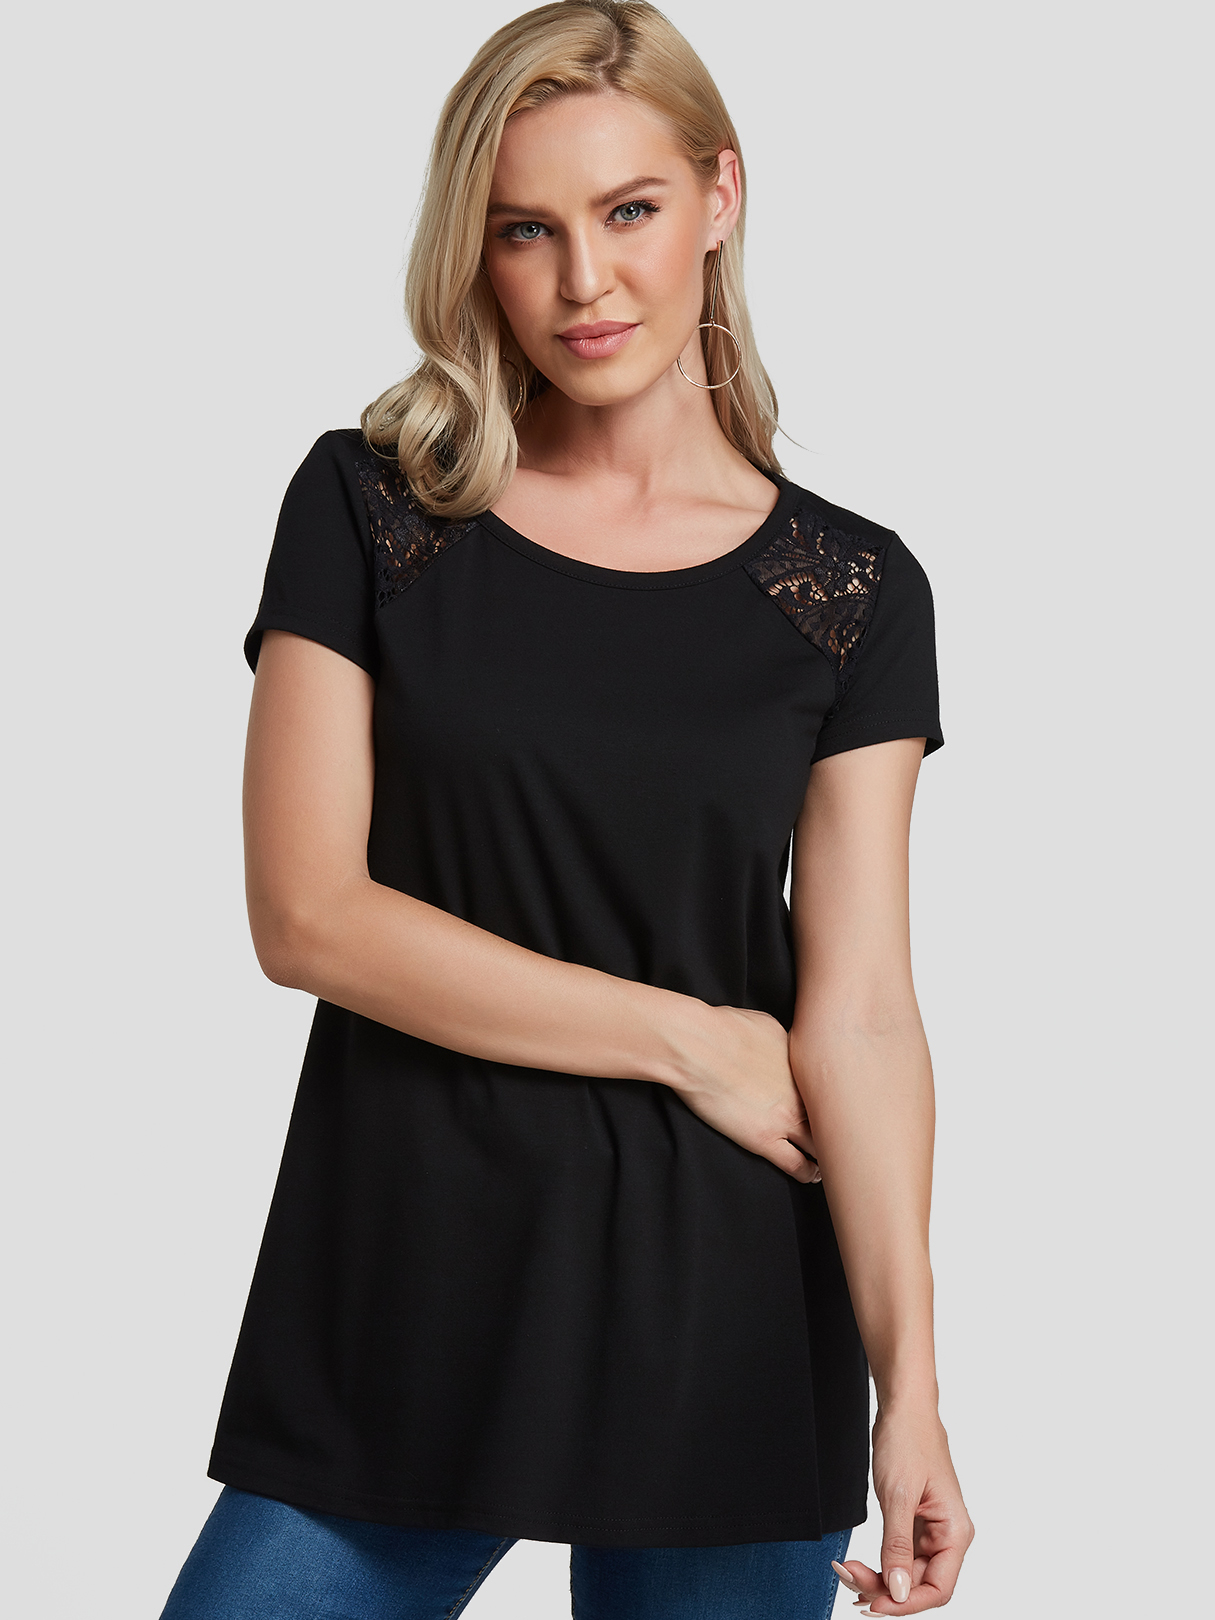 Black Lace Insert Round Neck Short Sleeves Tee